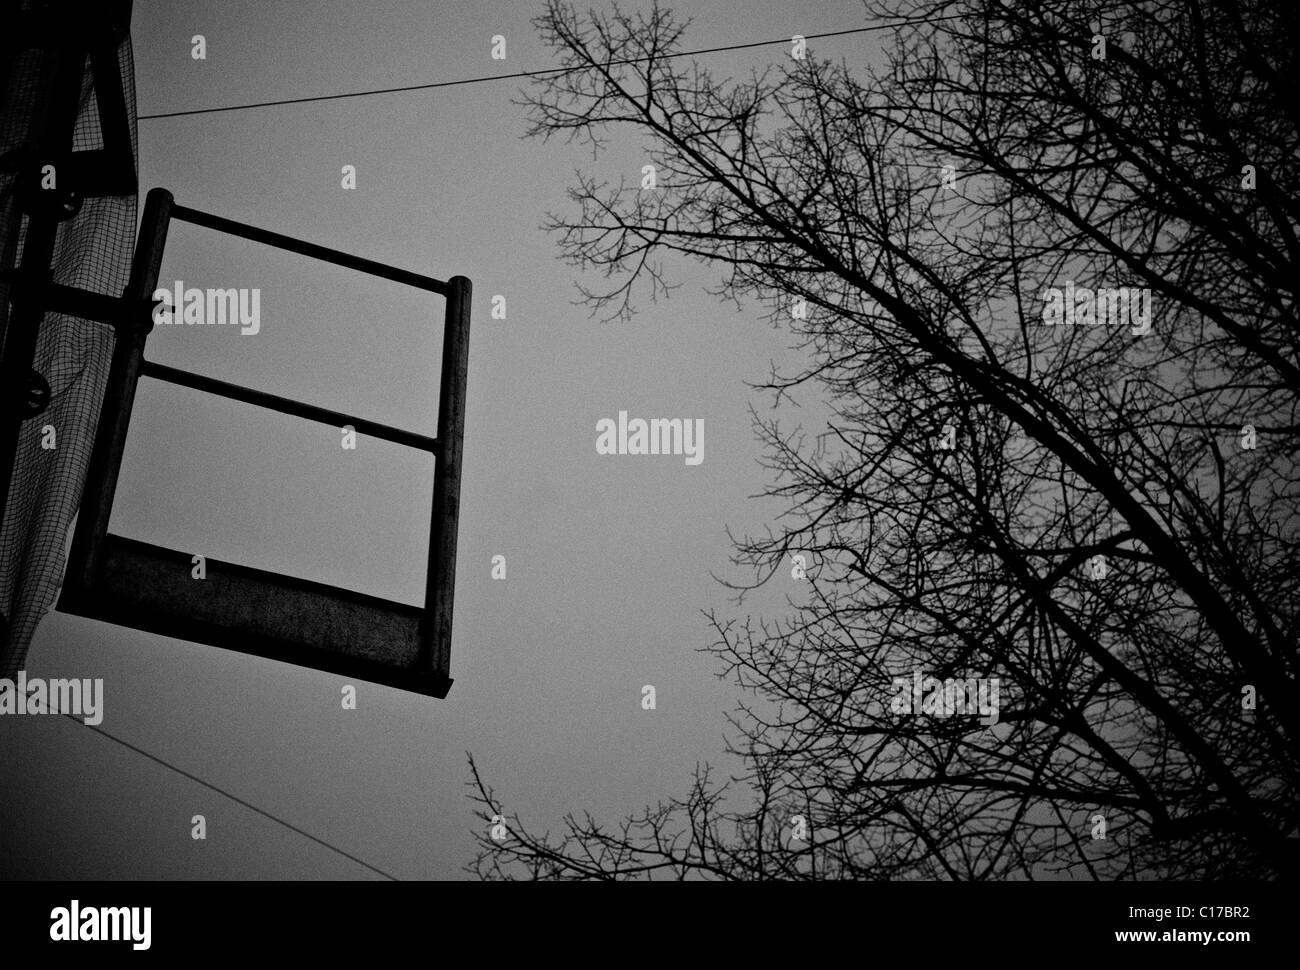 SCAFFOLDING COPY SPACE - Stock Image